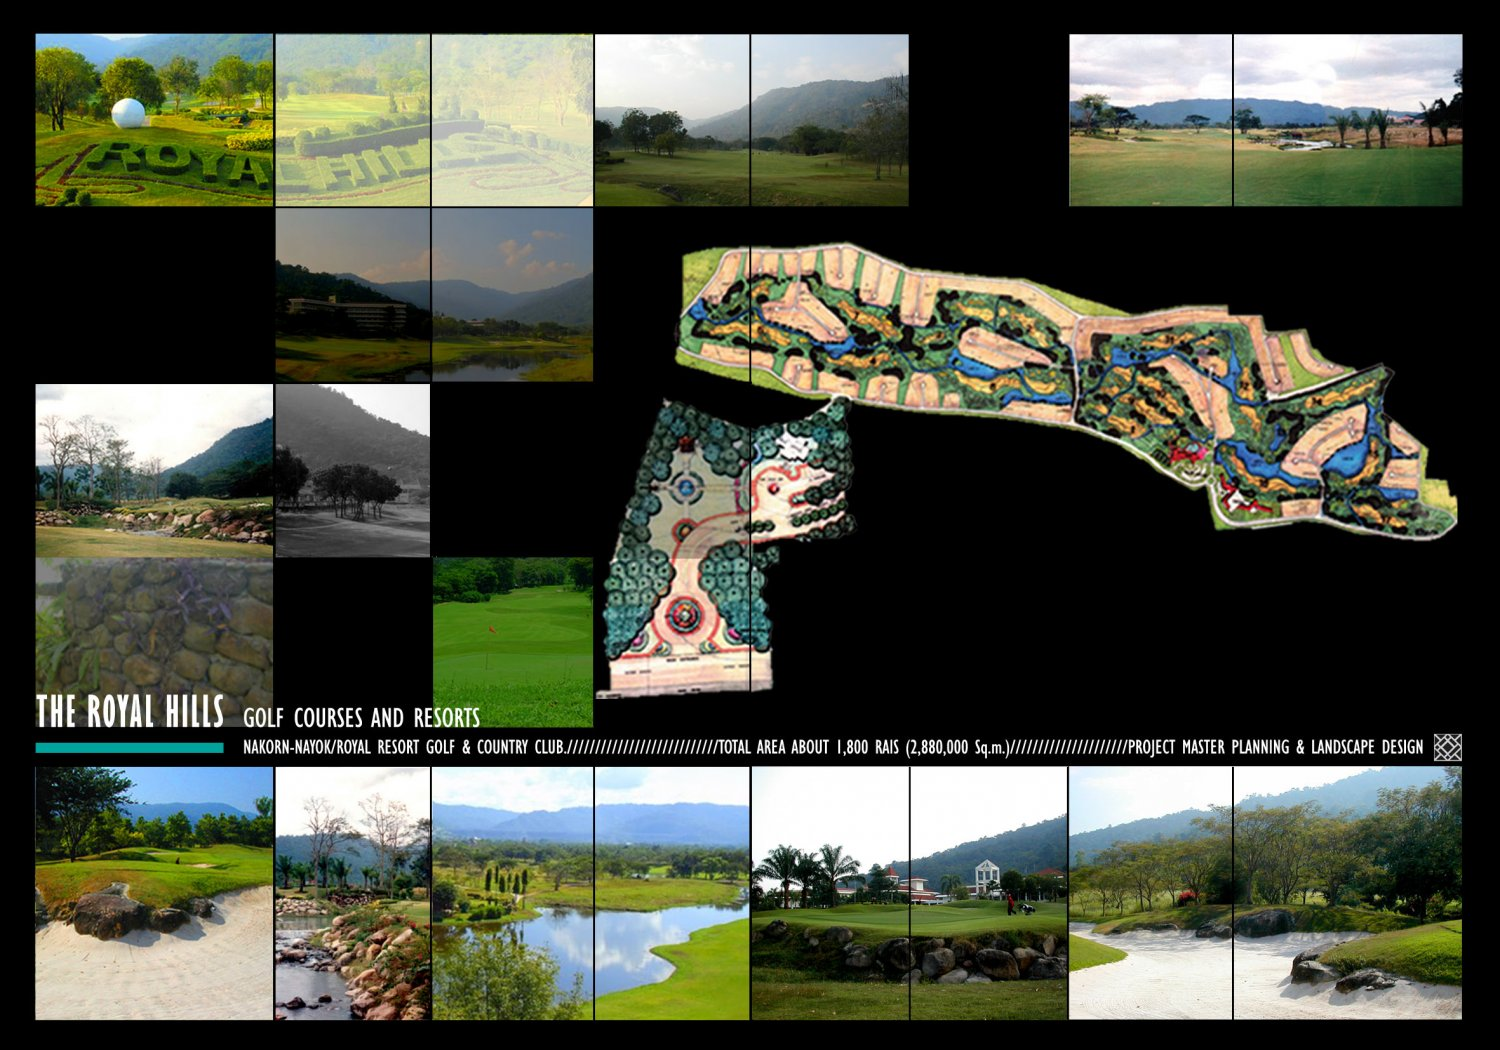 The Royal Hills Golf Courses & Resorts